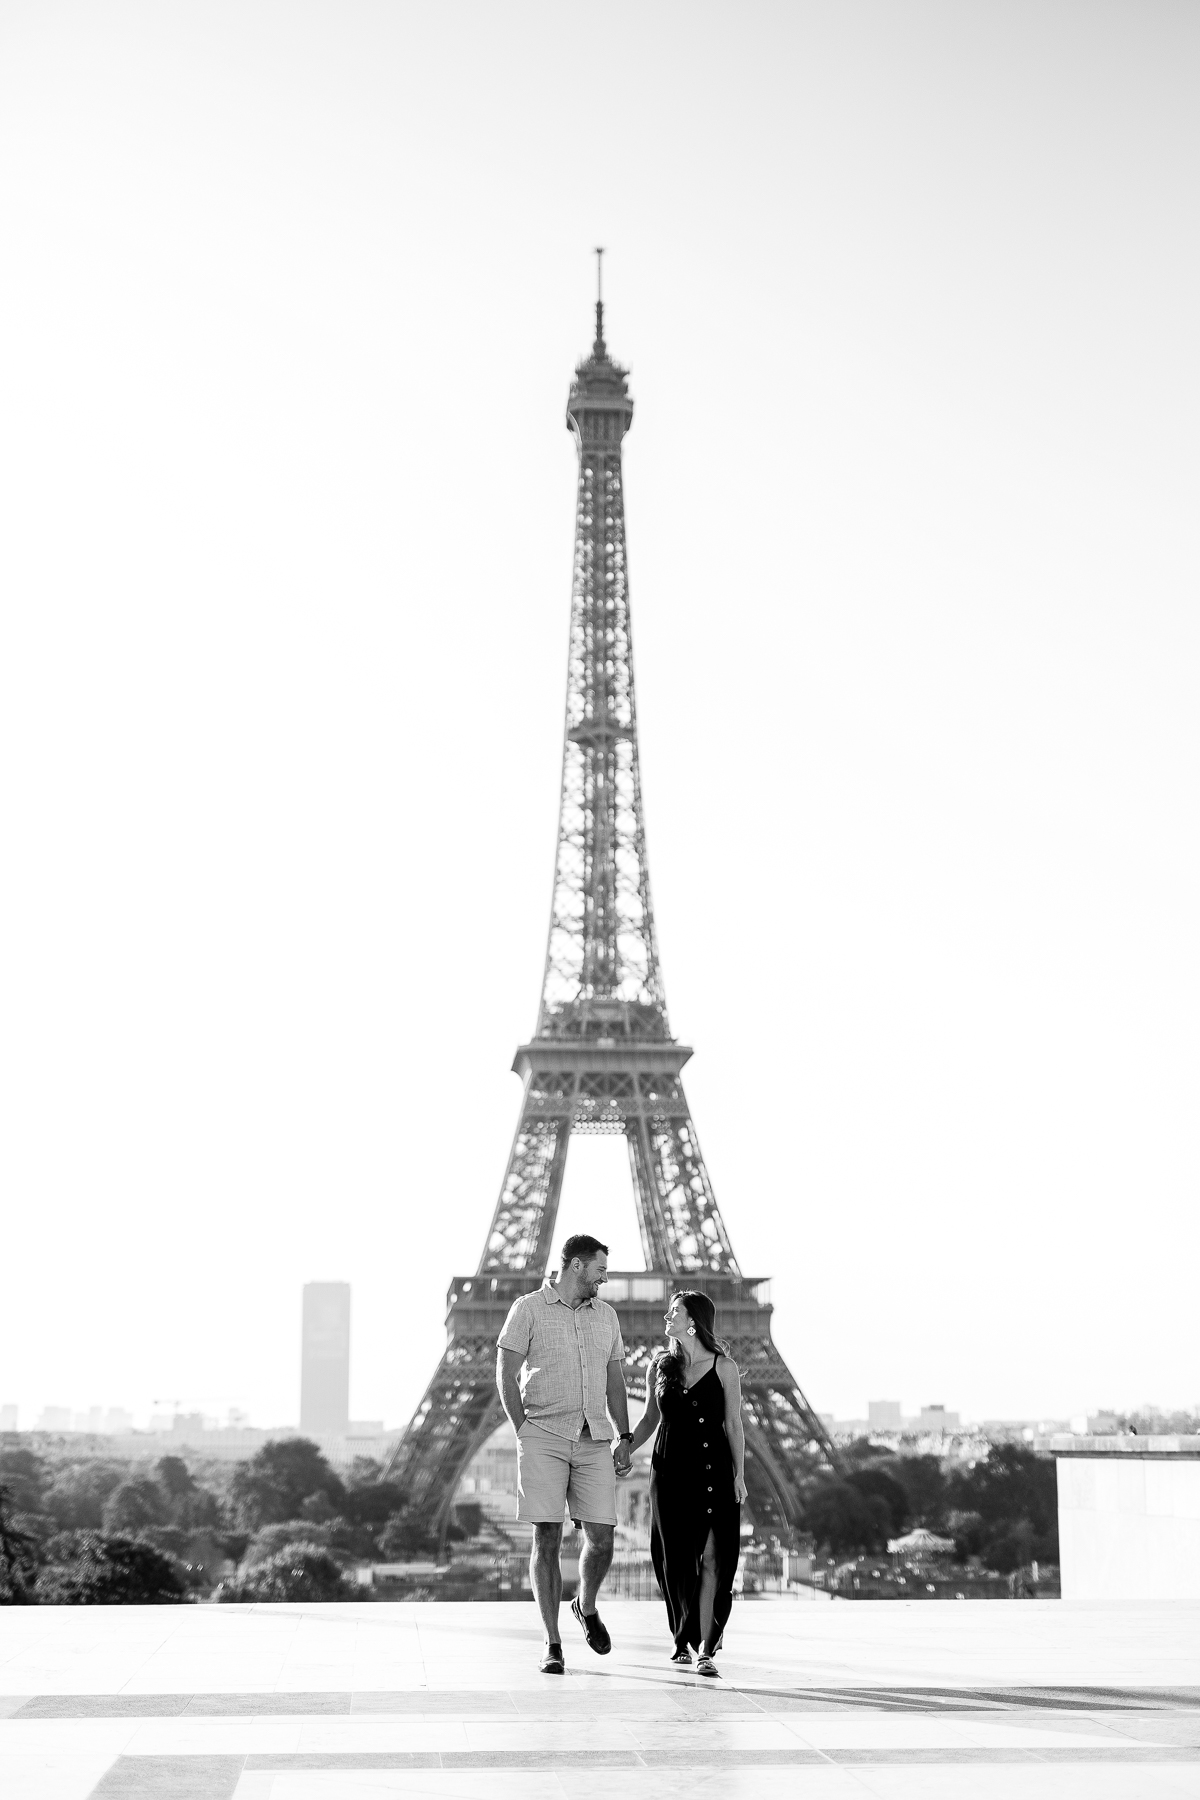 eiffel-tower-pregnancy-announcement-paris-english-speaking-photographers-katie-donnelly-photography_001.jpg